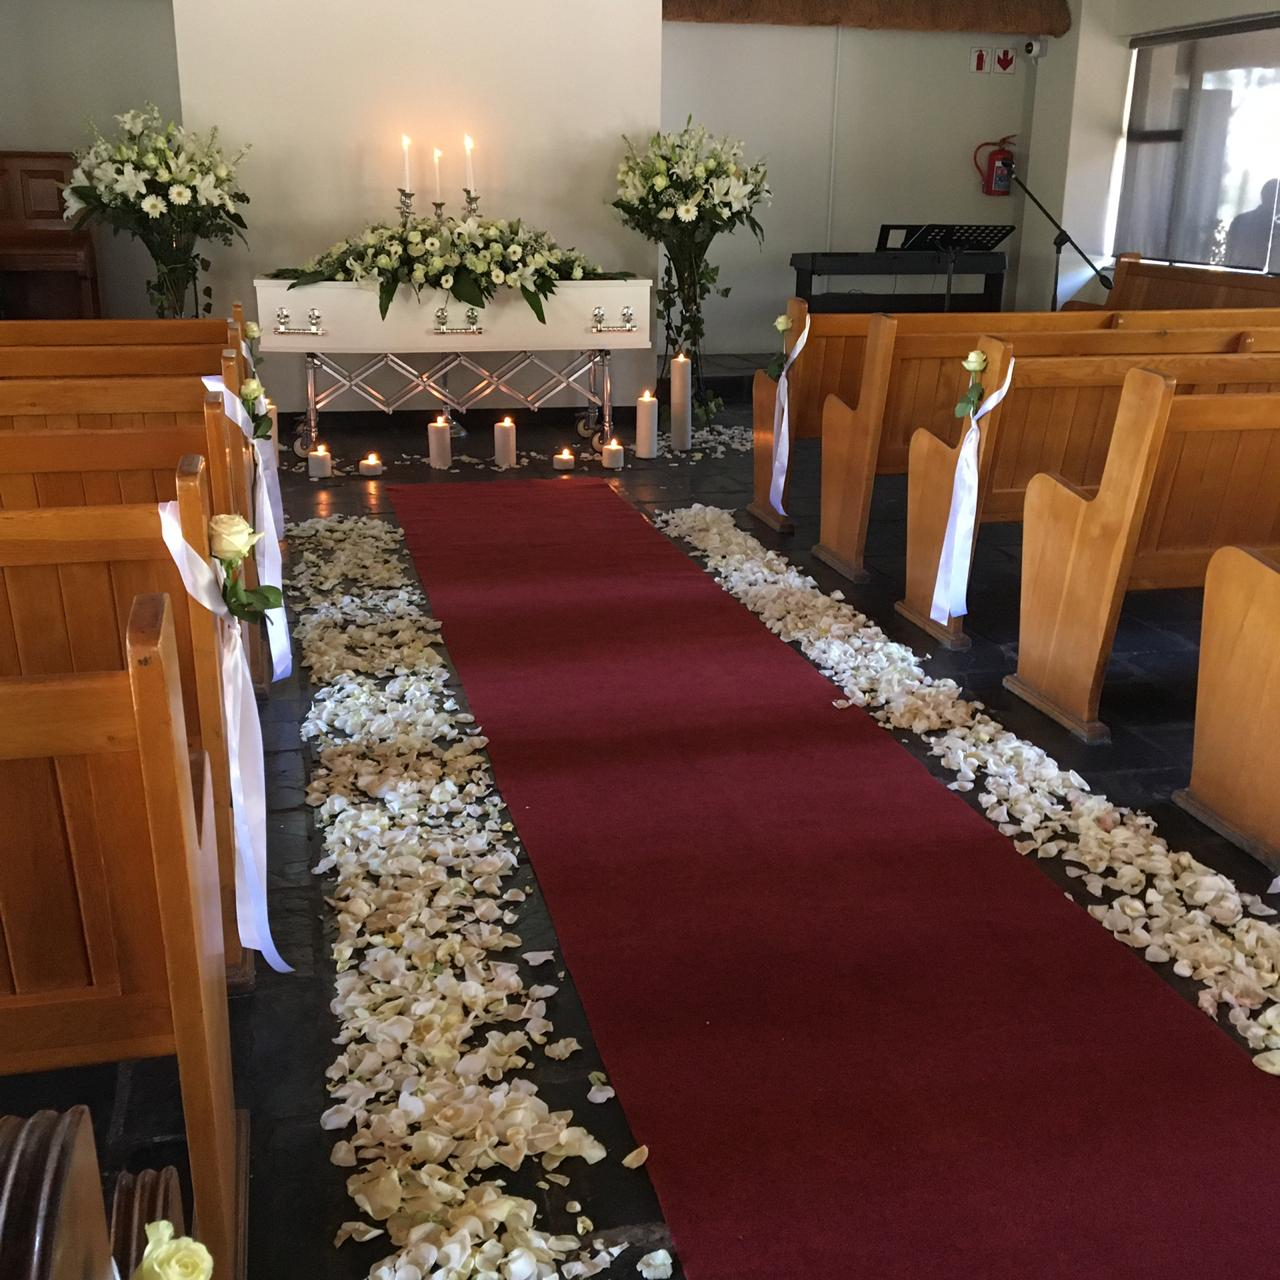 A chapel setup for a funeral with petals along the floor